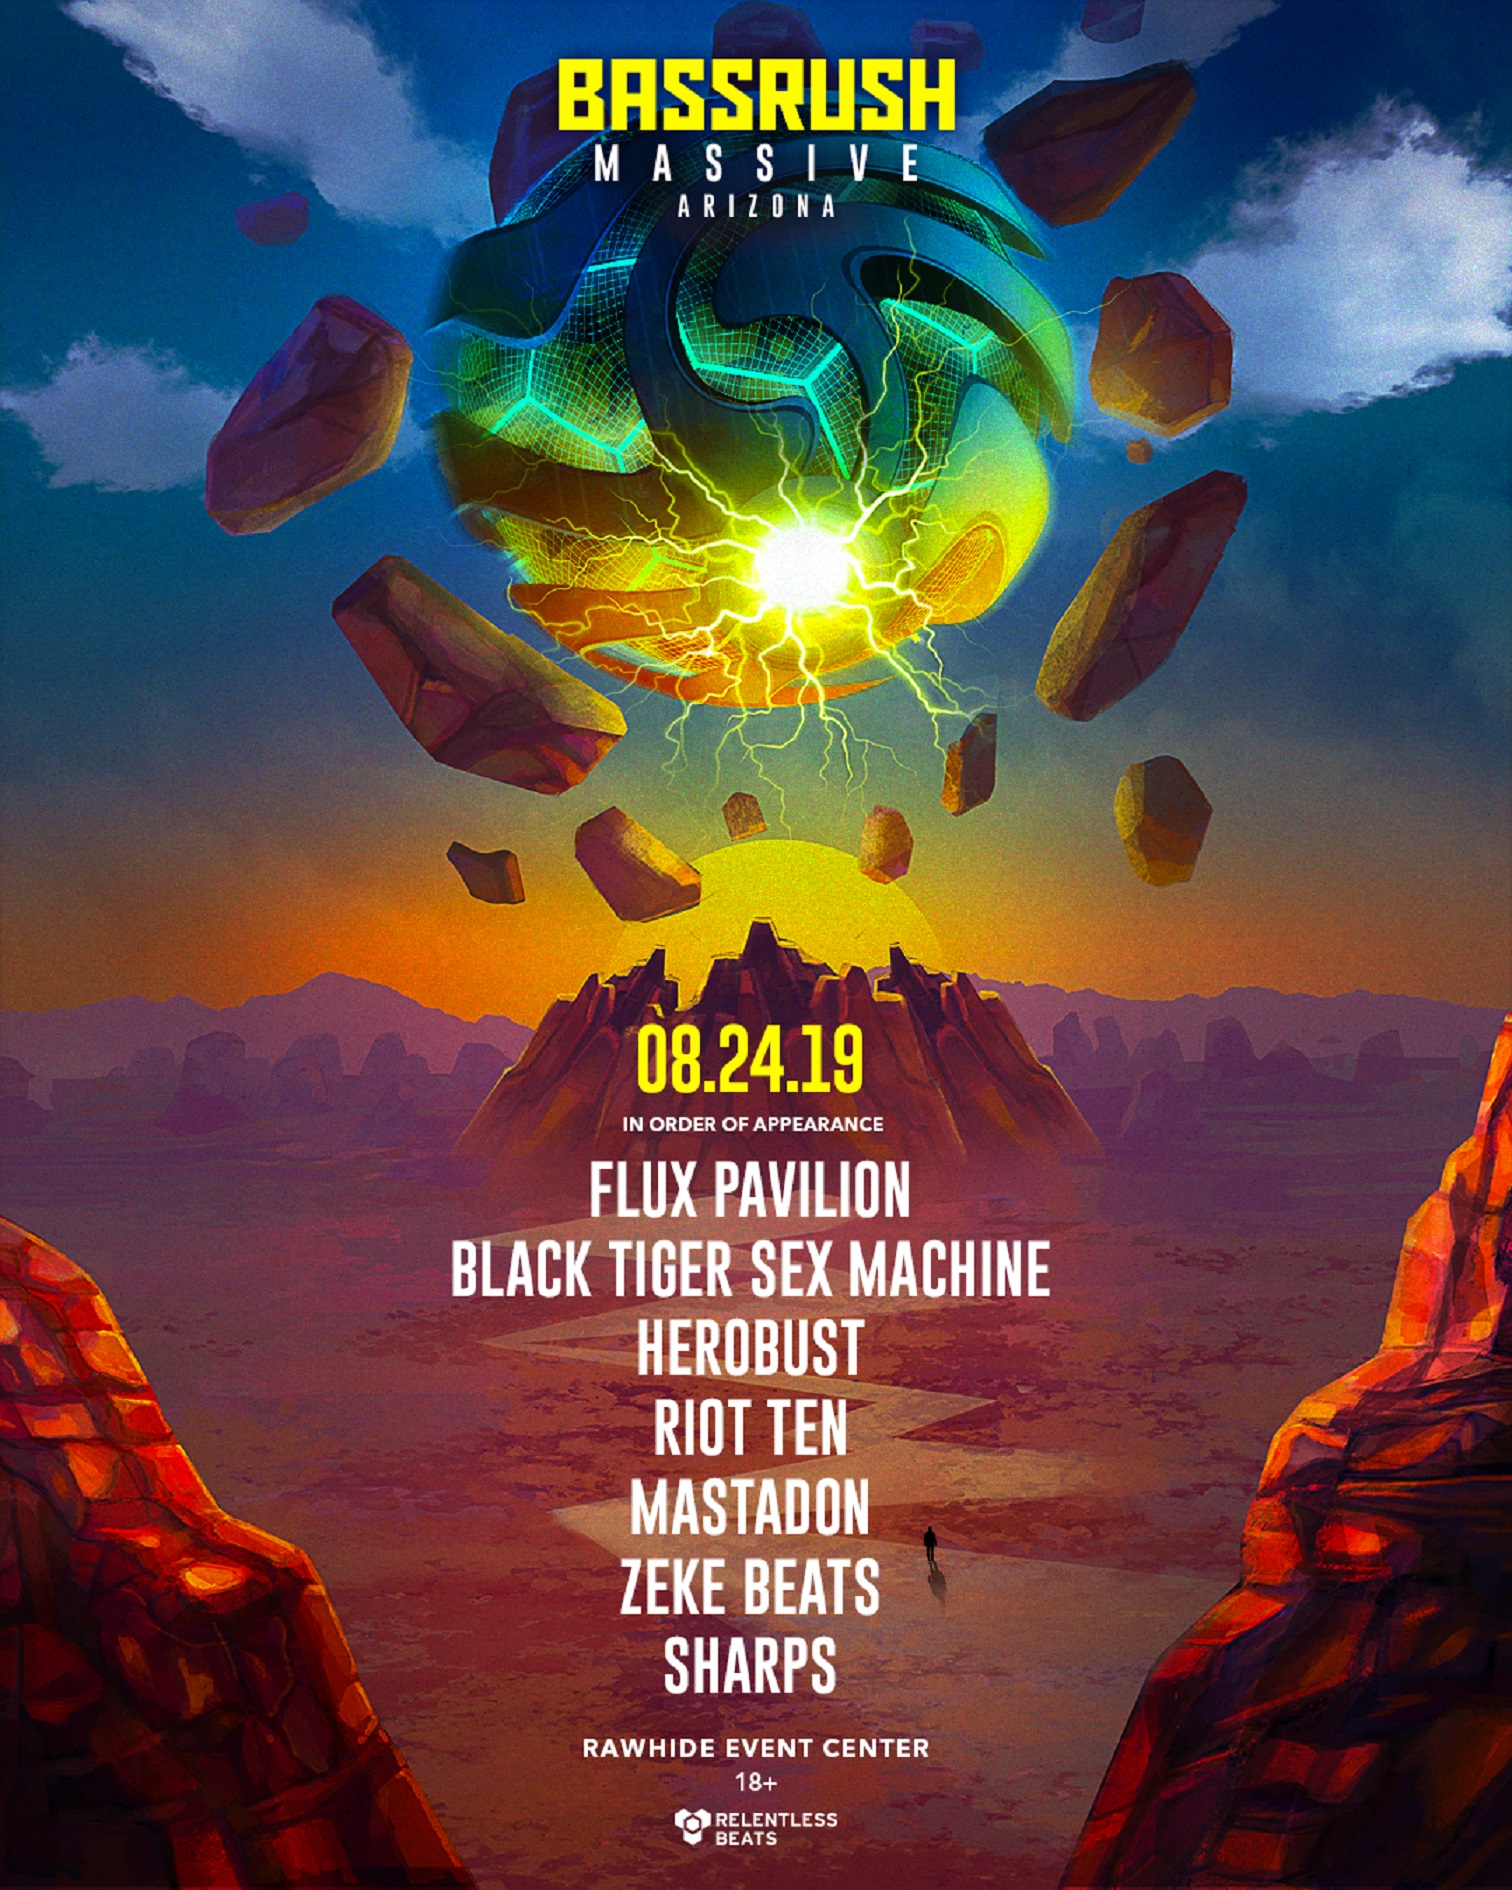 RELENTLESS BEATS ANNOUNCES BASSRUSH MASSIVE ARIZONA, AUGUST 24, 2019